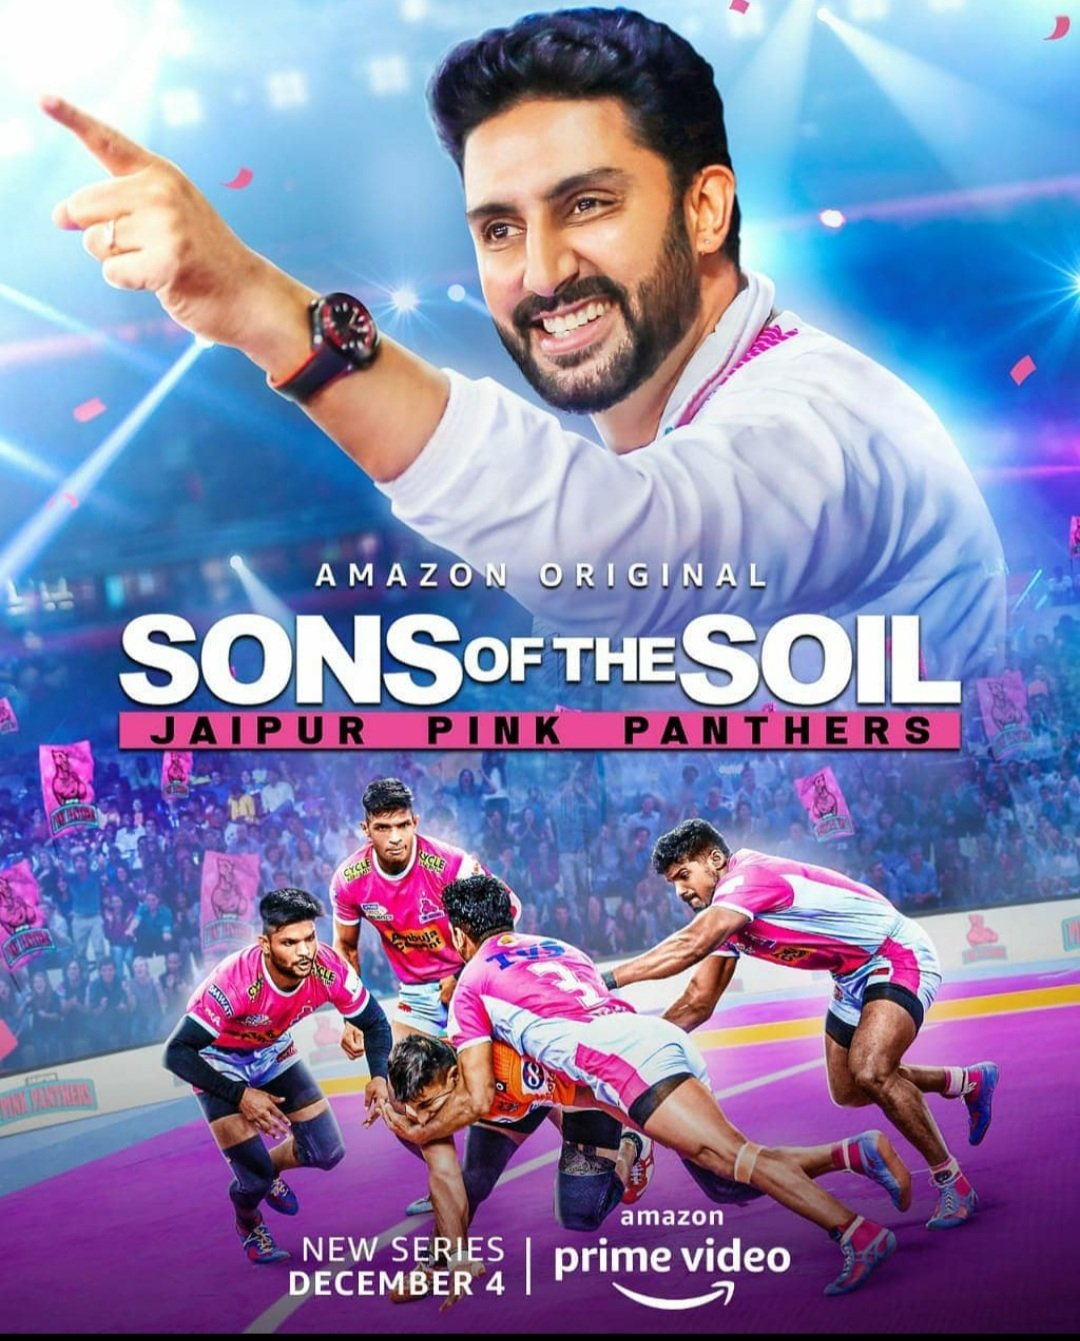 Prime Video, BBC Studios India launch the Amazon Original Series 'Sons of the Soil: Jaipur Pink Panthers'